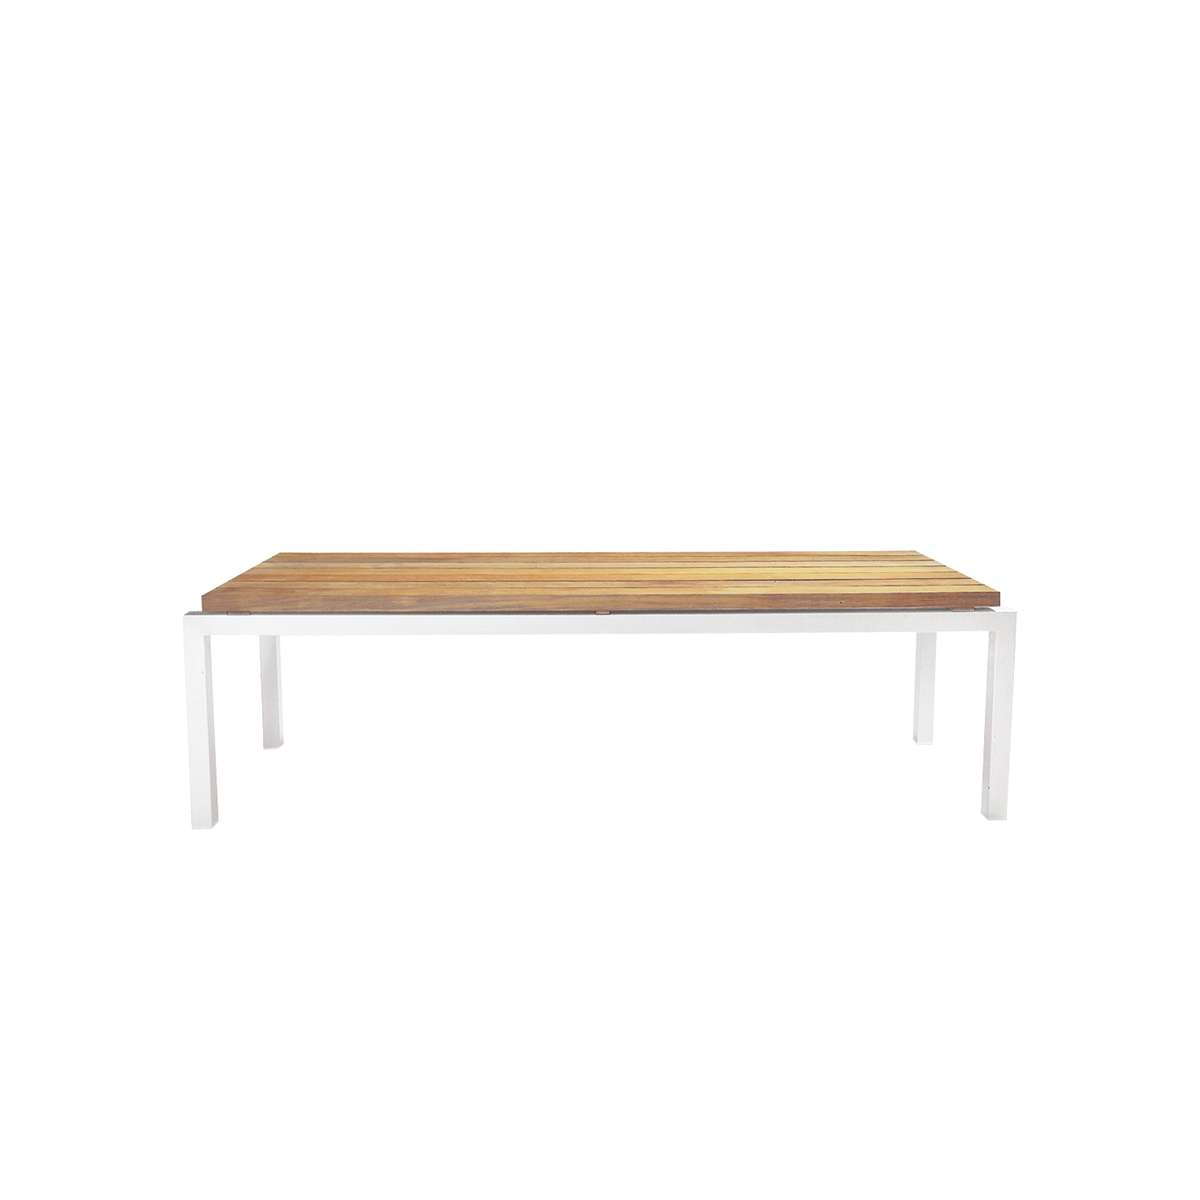 Tribu Natal Alu Teak Bench Hr 1